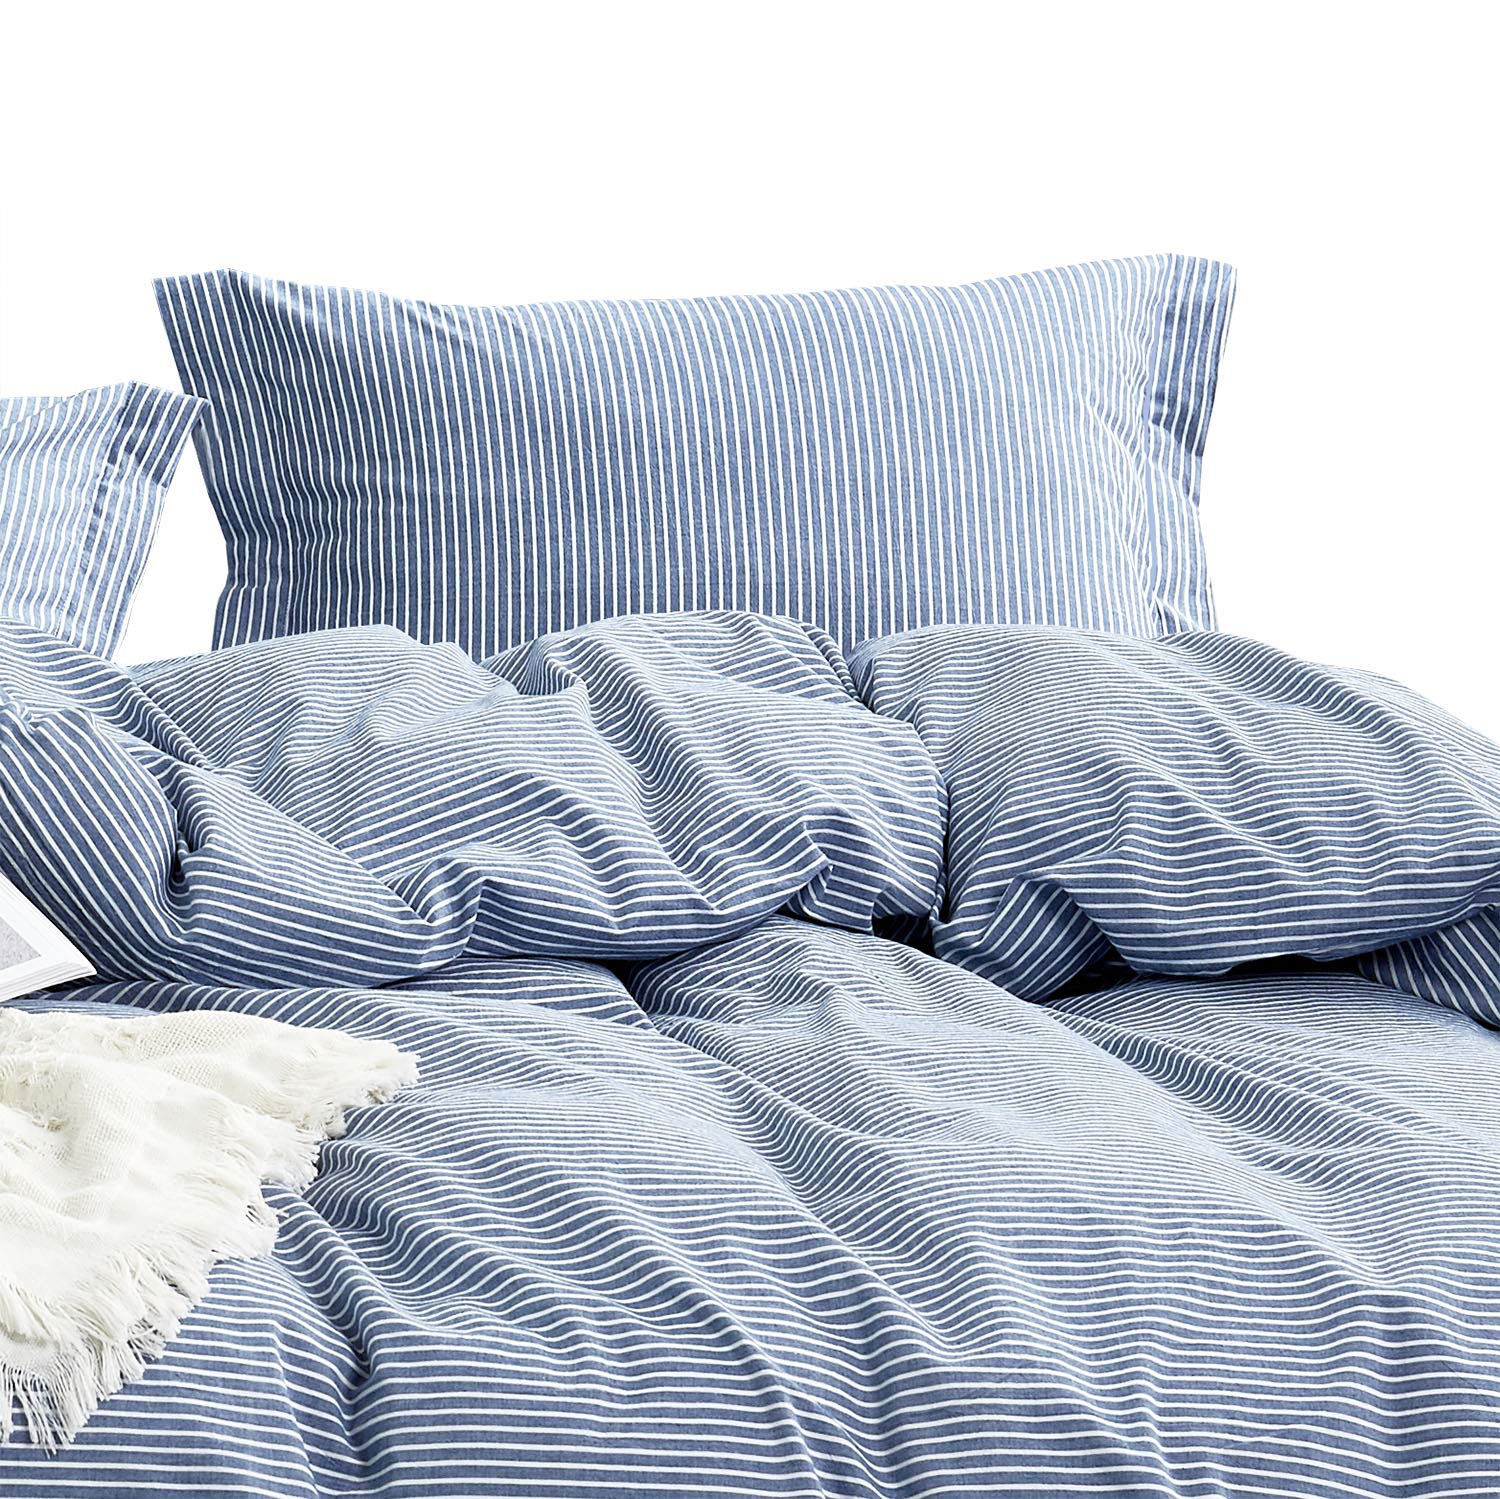 Wake In Cloud - White Striped Duvet Cover Set, 100% Washed Cotton Bedding, Black Vertical Ticking Stripes Pattern Printed on White, with Zipper Closure (3pcs, King Size) A0234-BT3-K(J)